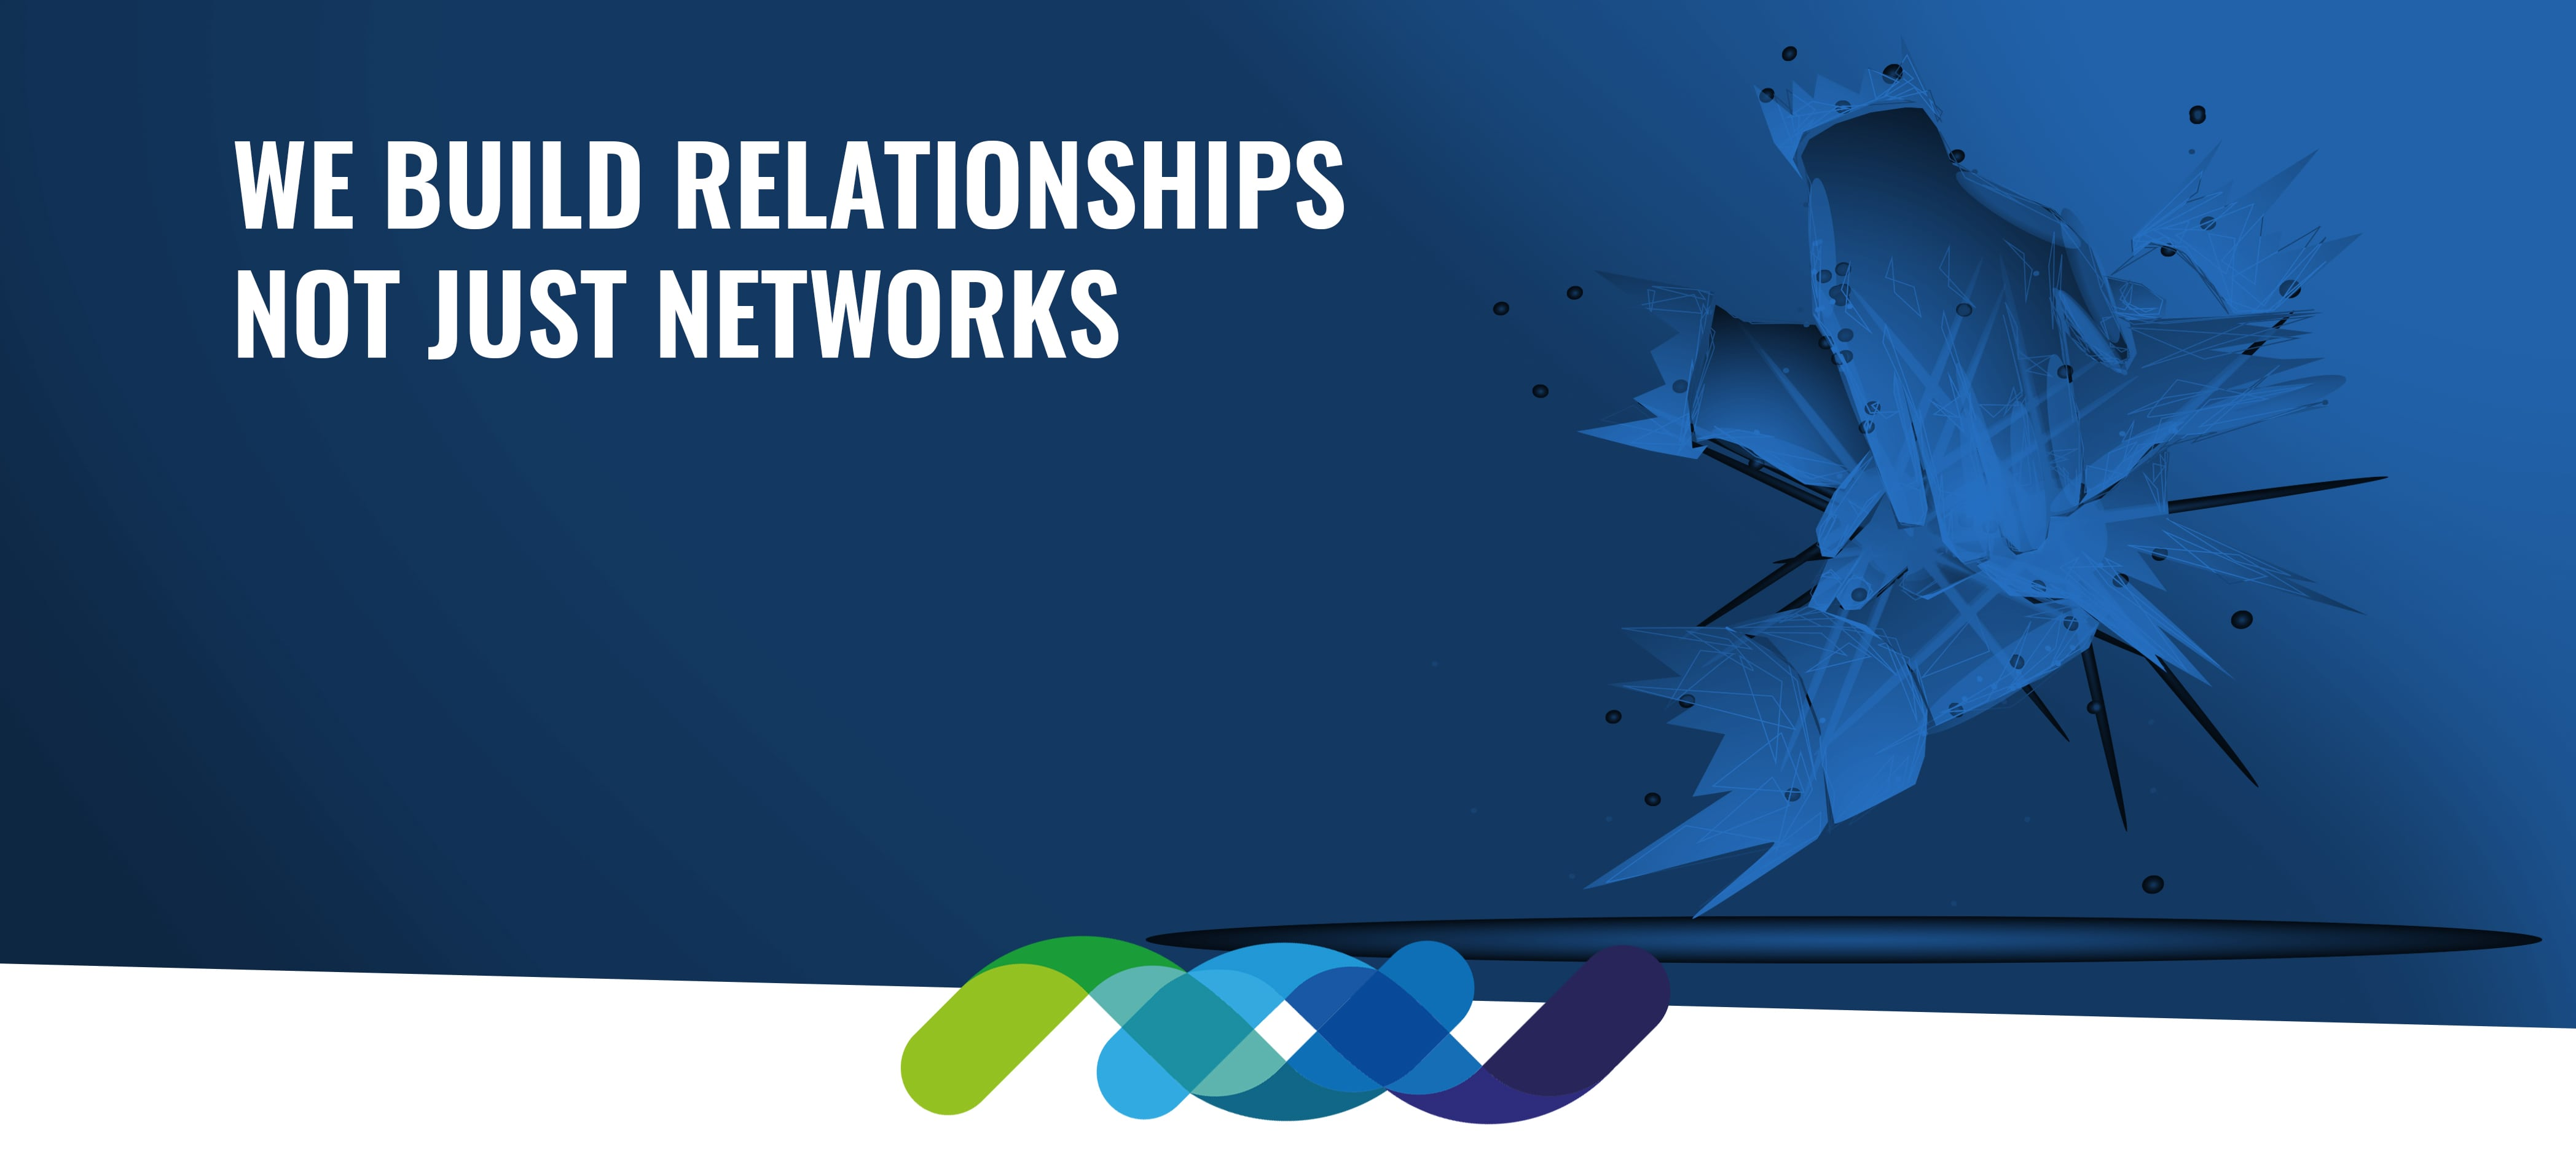 We build relationships not just networks